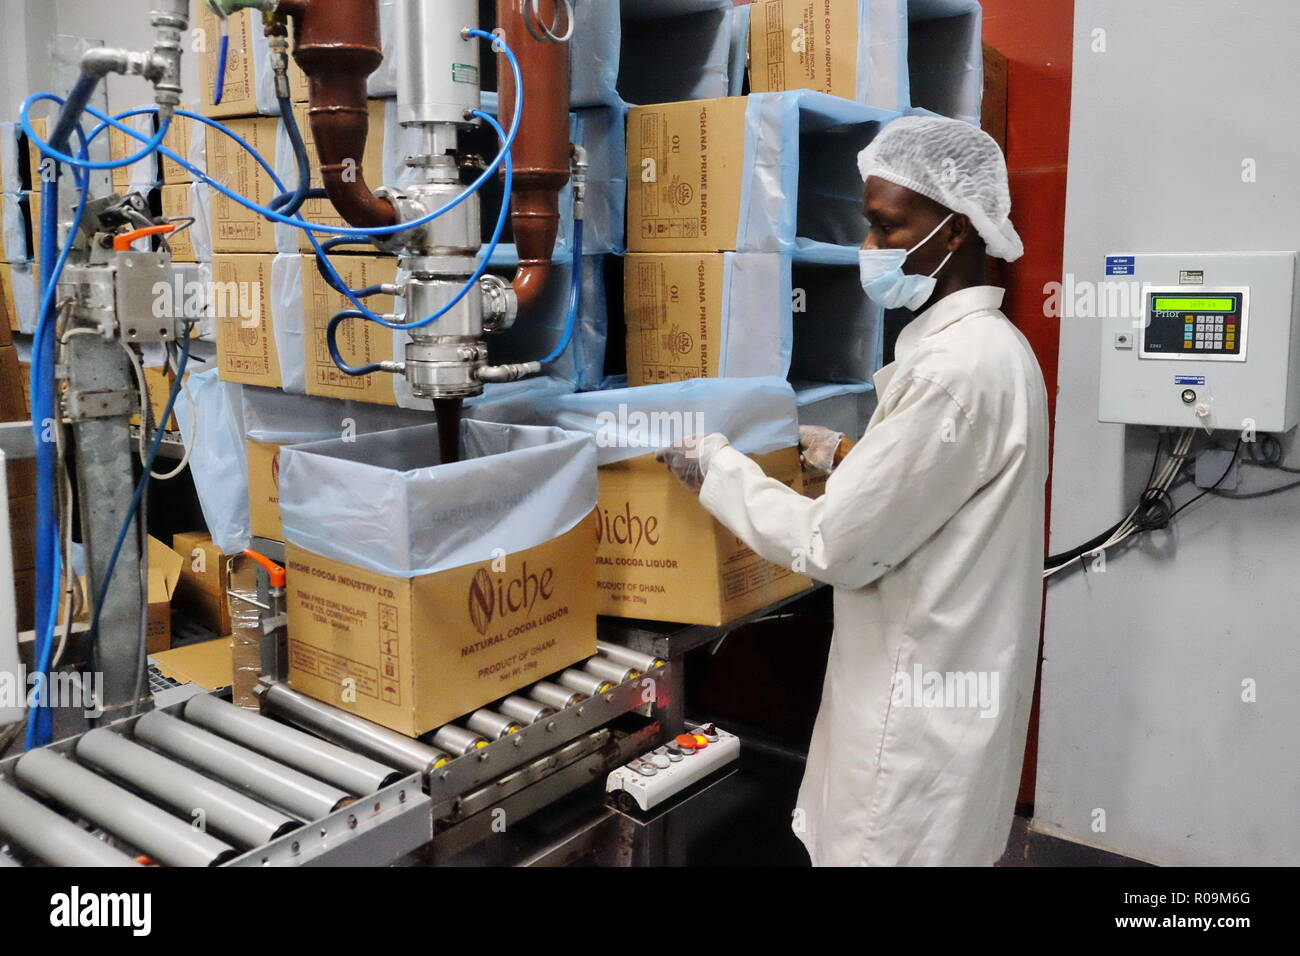 Cocoa Processing Stock Photos & Cocoa Processing Stock Images - Alamy